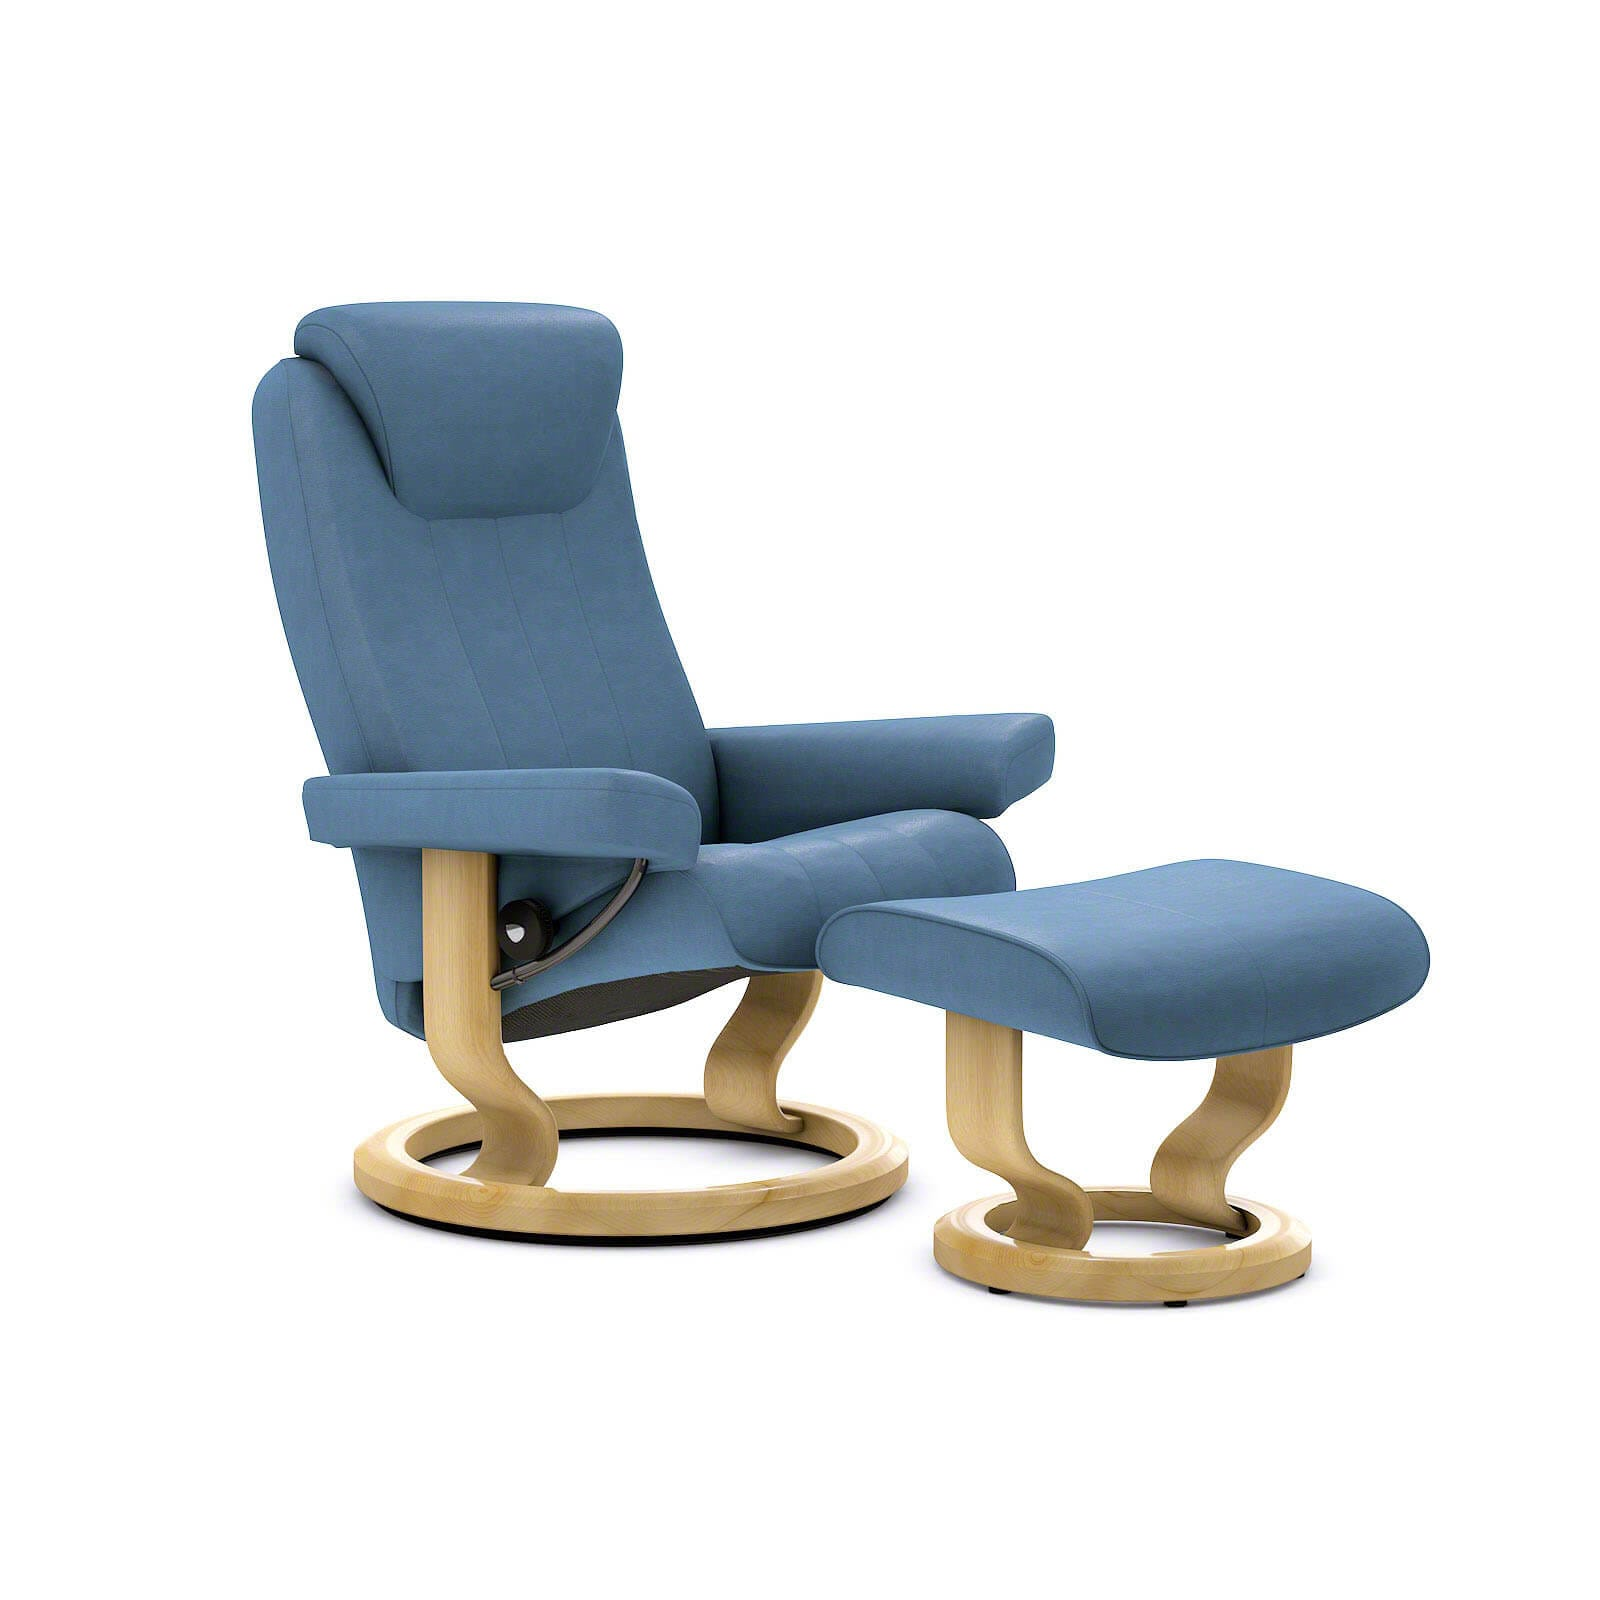 Fernsehsessel Blau Stressless Bliss Sessel Sparrow Blue Mit Hocker Stressless